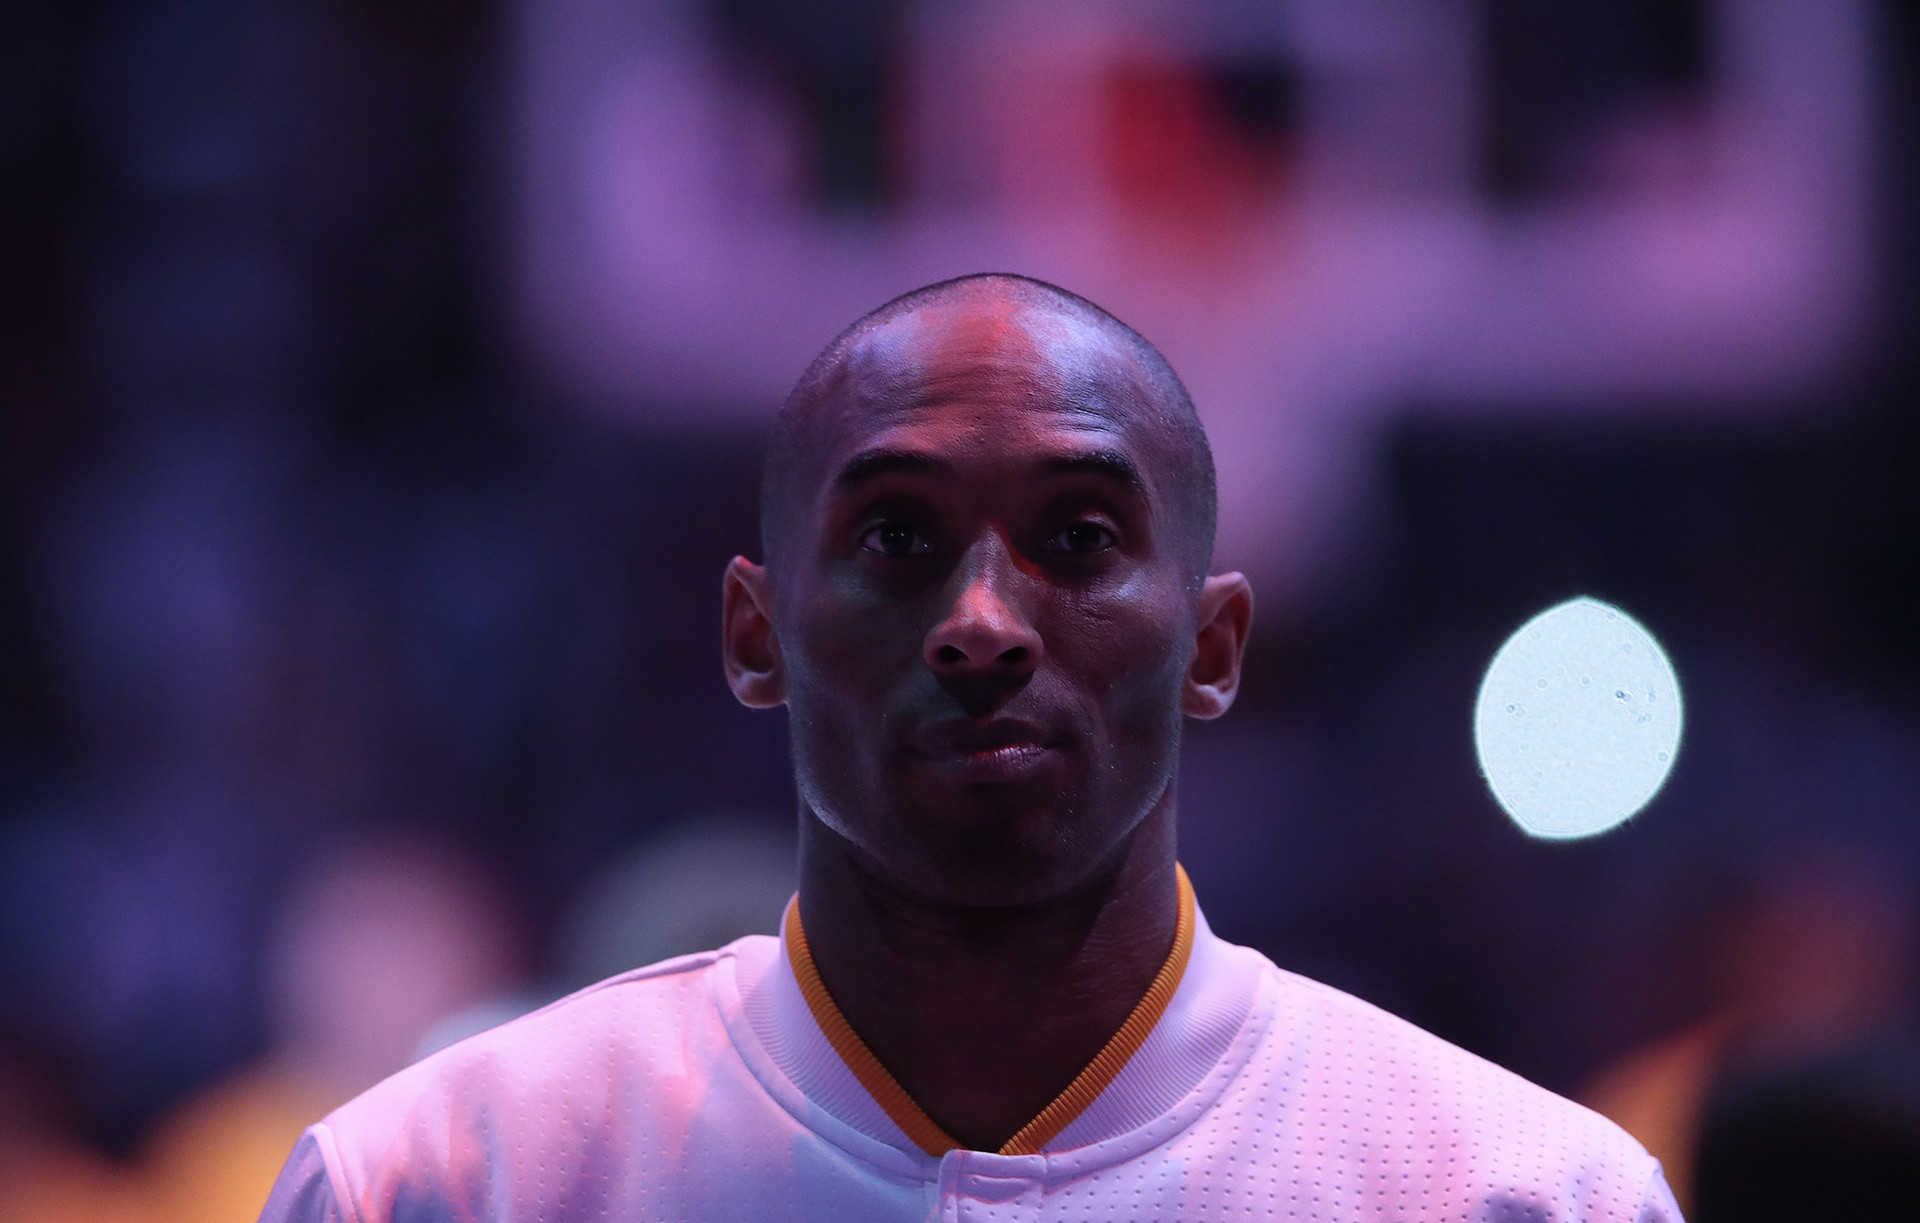 la-sp-ln-lakers-week-5-review-kobe-bryant-retirement-20151130